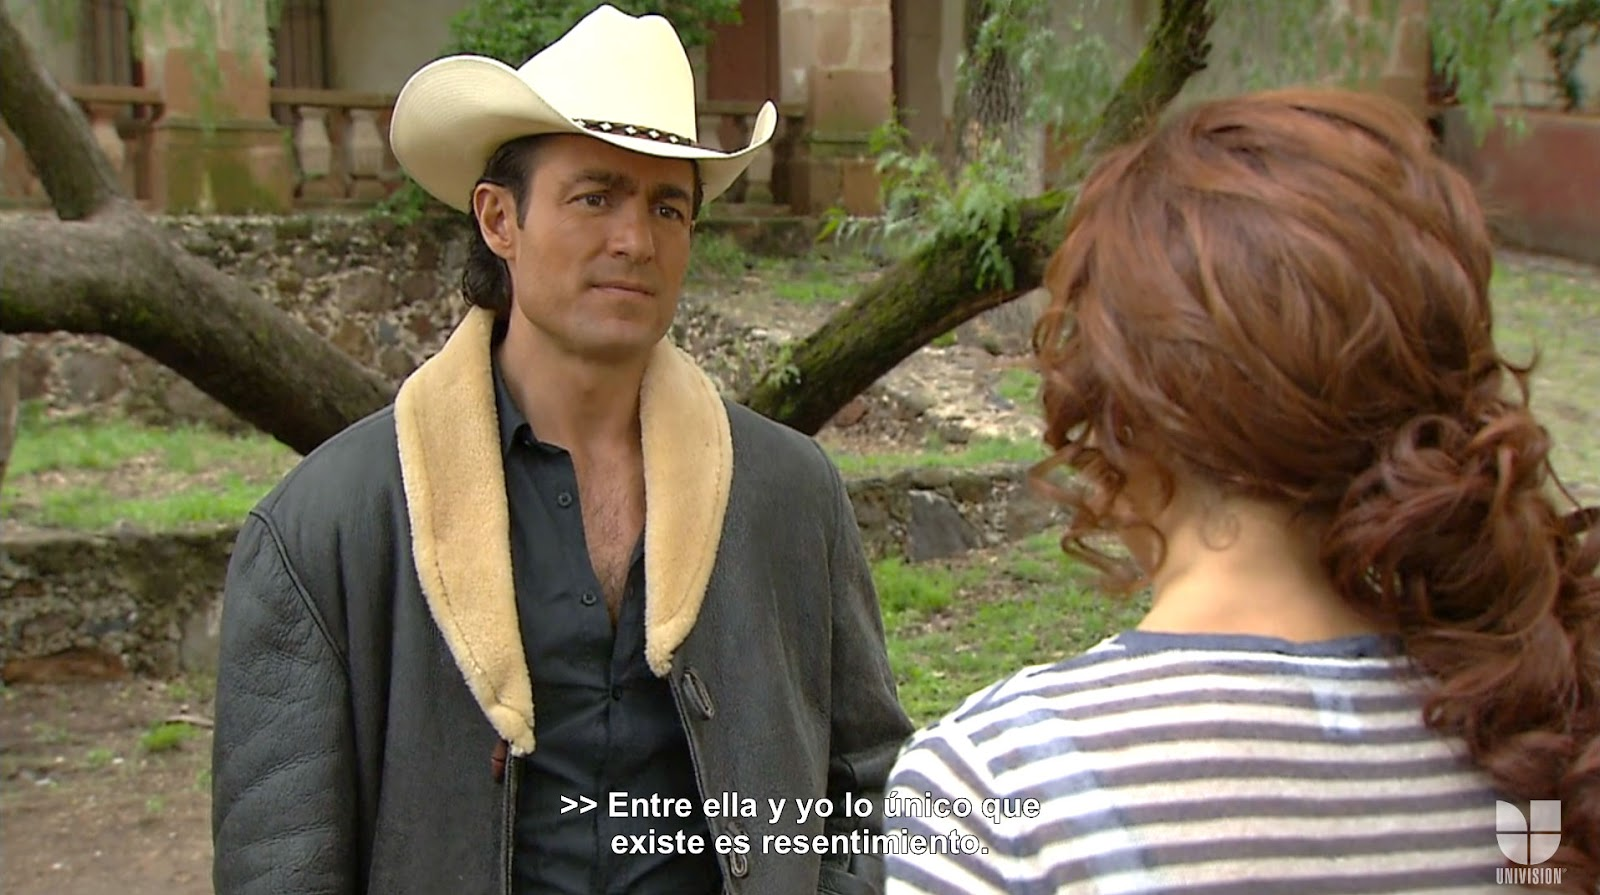 ... Hulu) of Soy tú Dueña . Fernando Colunga in HD! (Again, click on